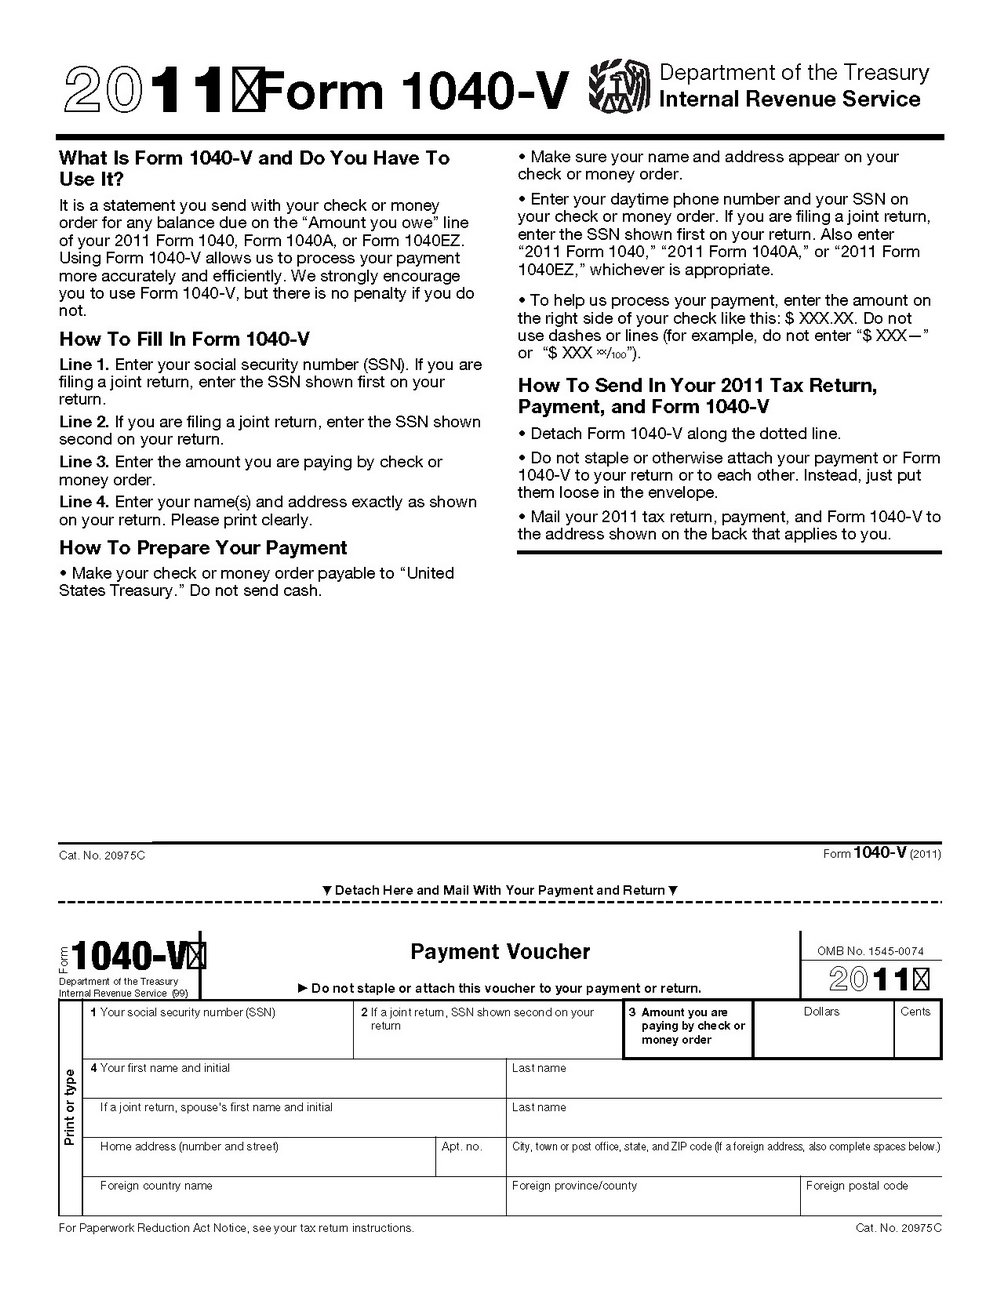 Irs Tax Forms 1040 Extension